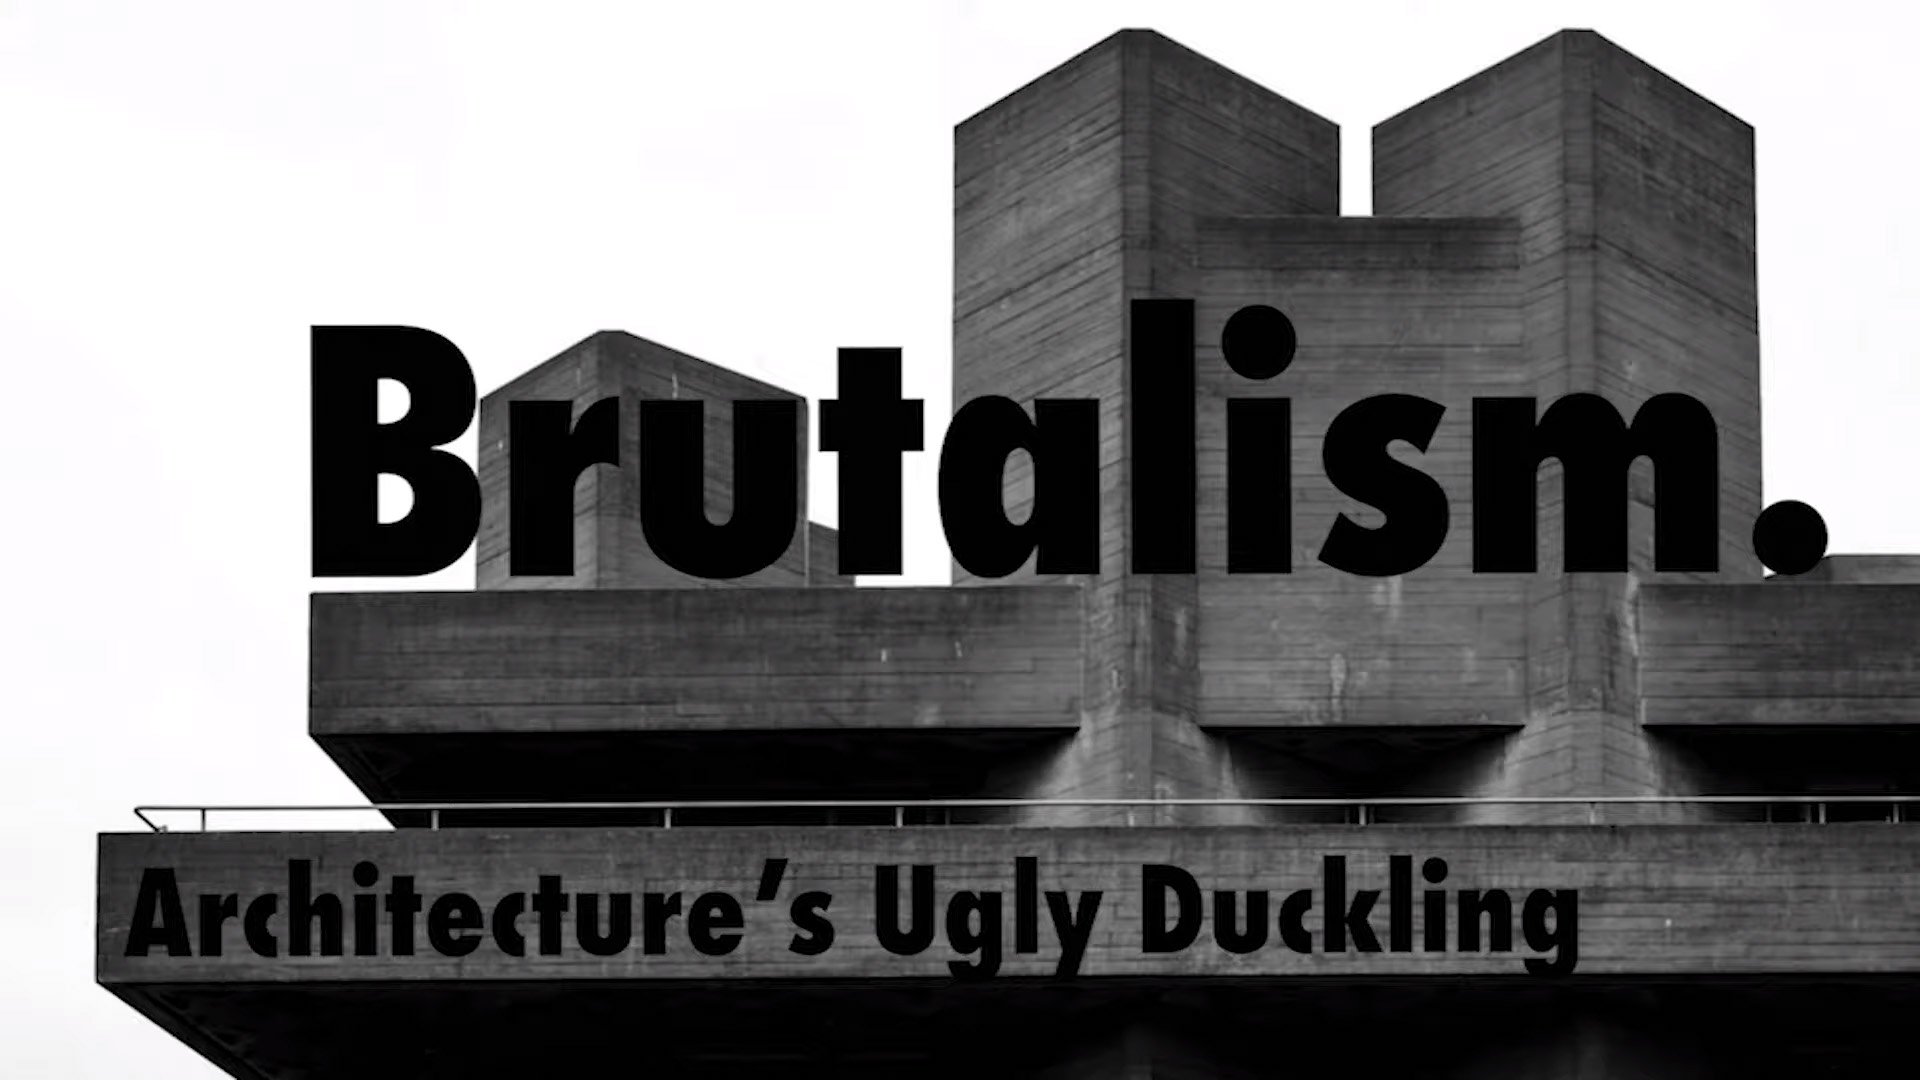 Architecture's Ugly Duckling